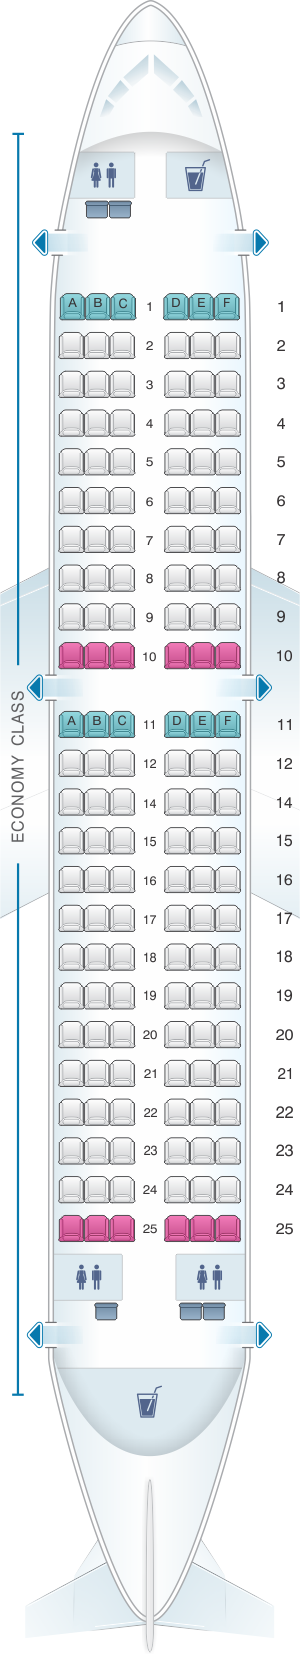 Seat map for Kingfisher Airlines Airbus A319 100